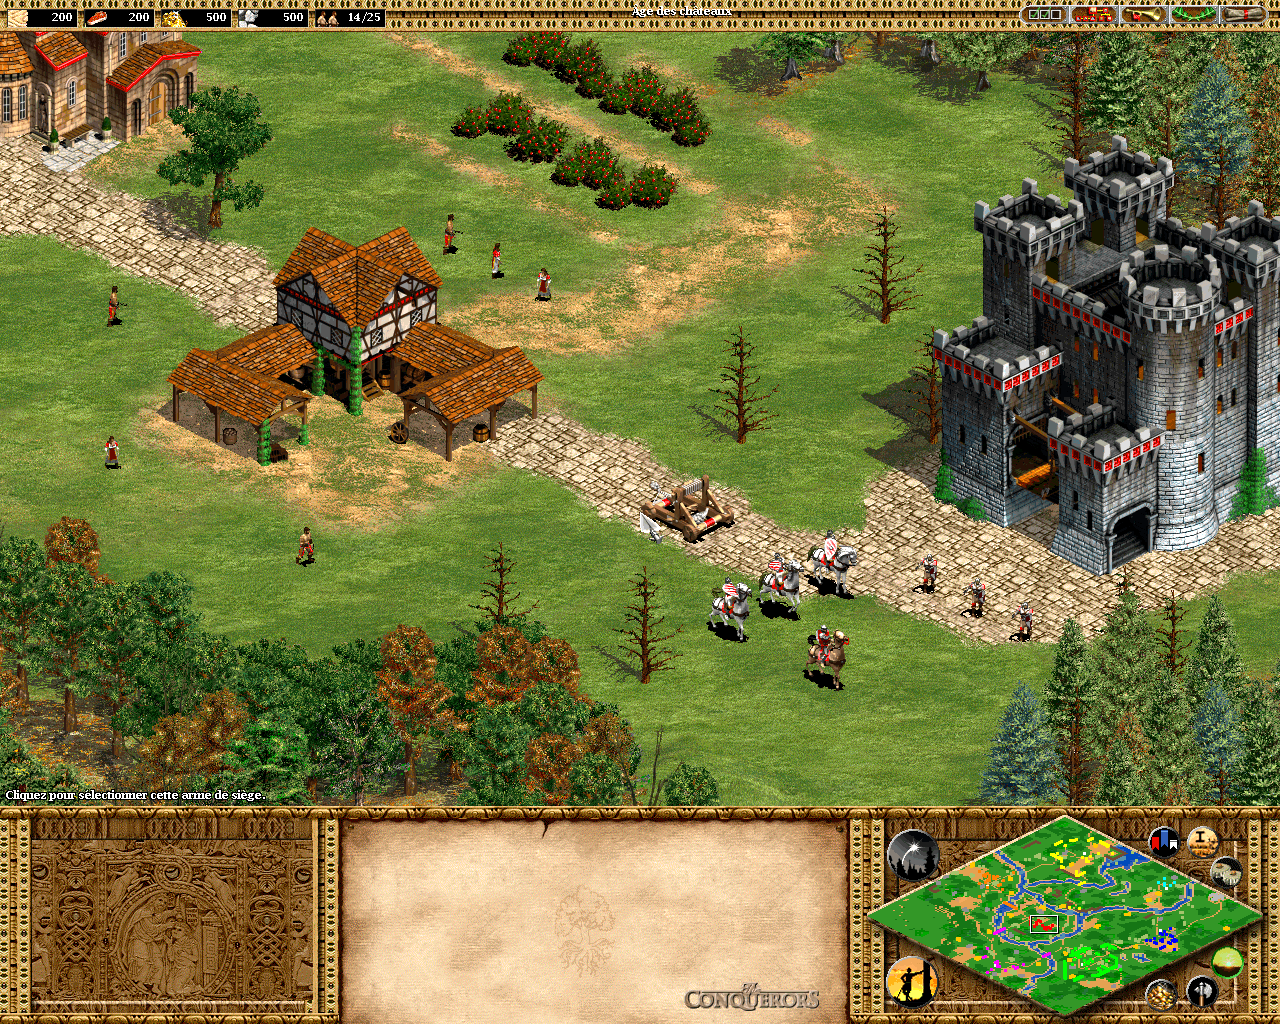 campagne aoe2